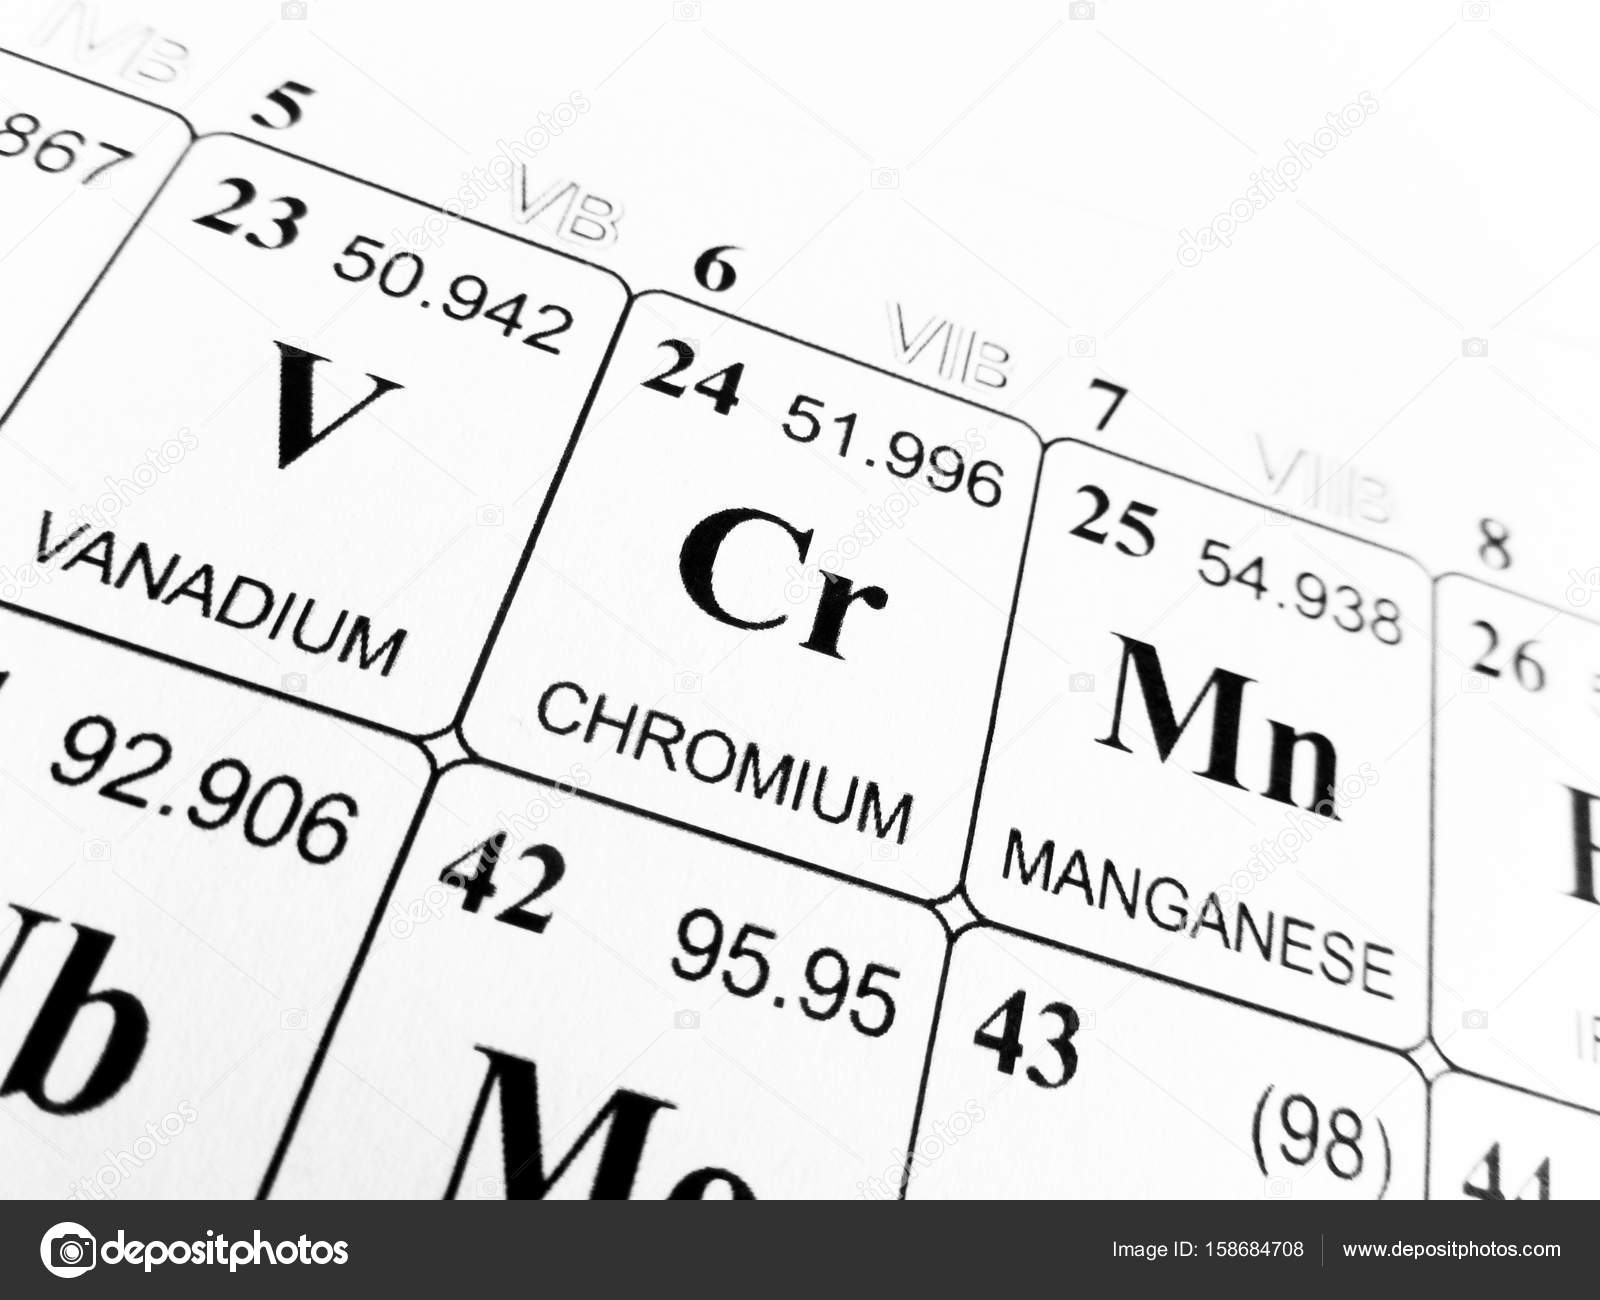 Chromium On The Periodic Table Of The Elements Stock Photo